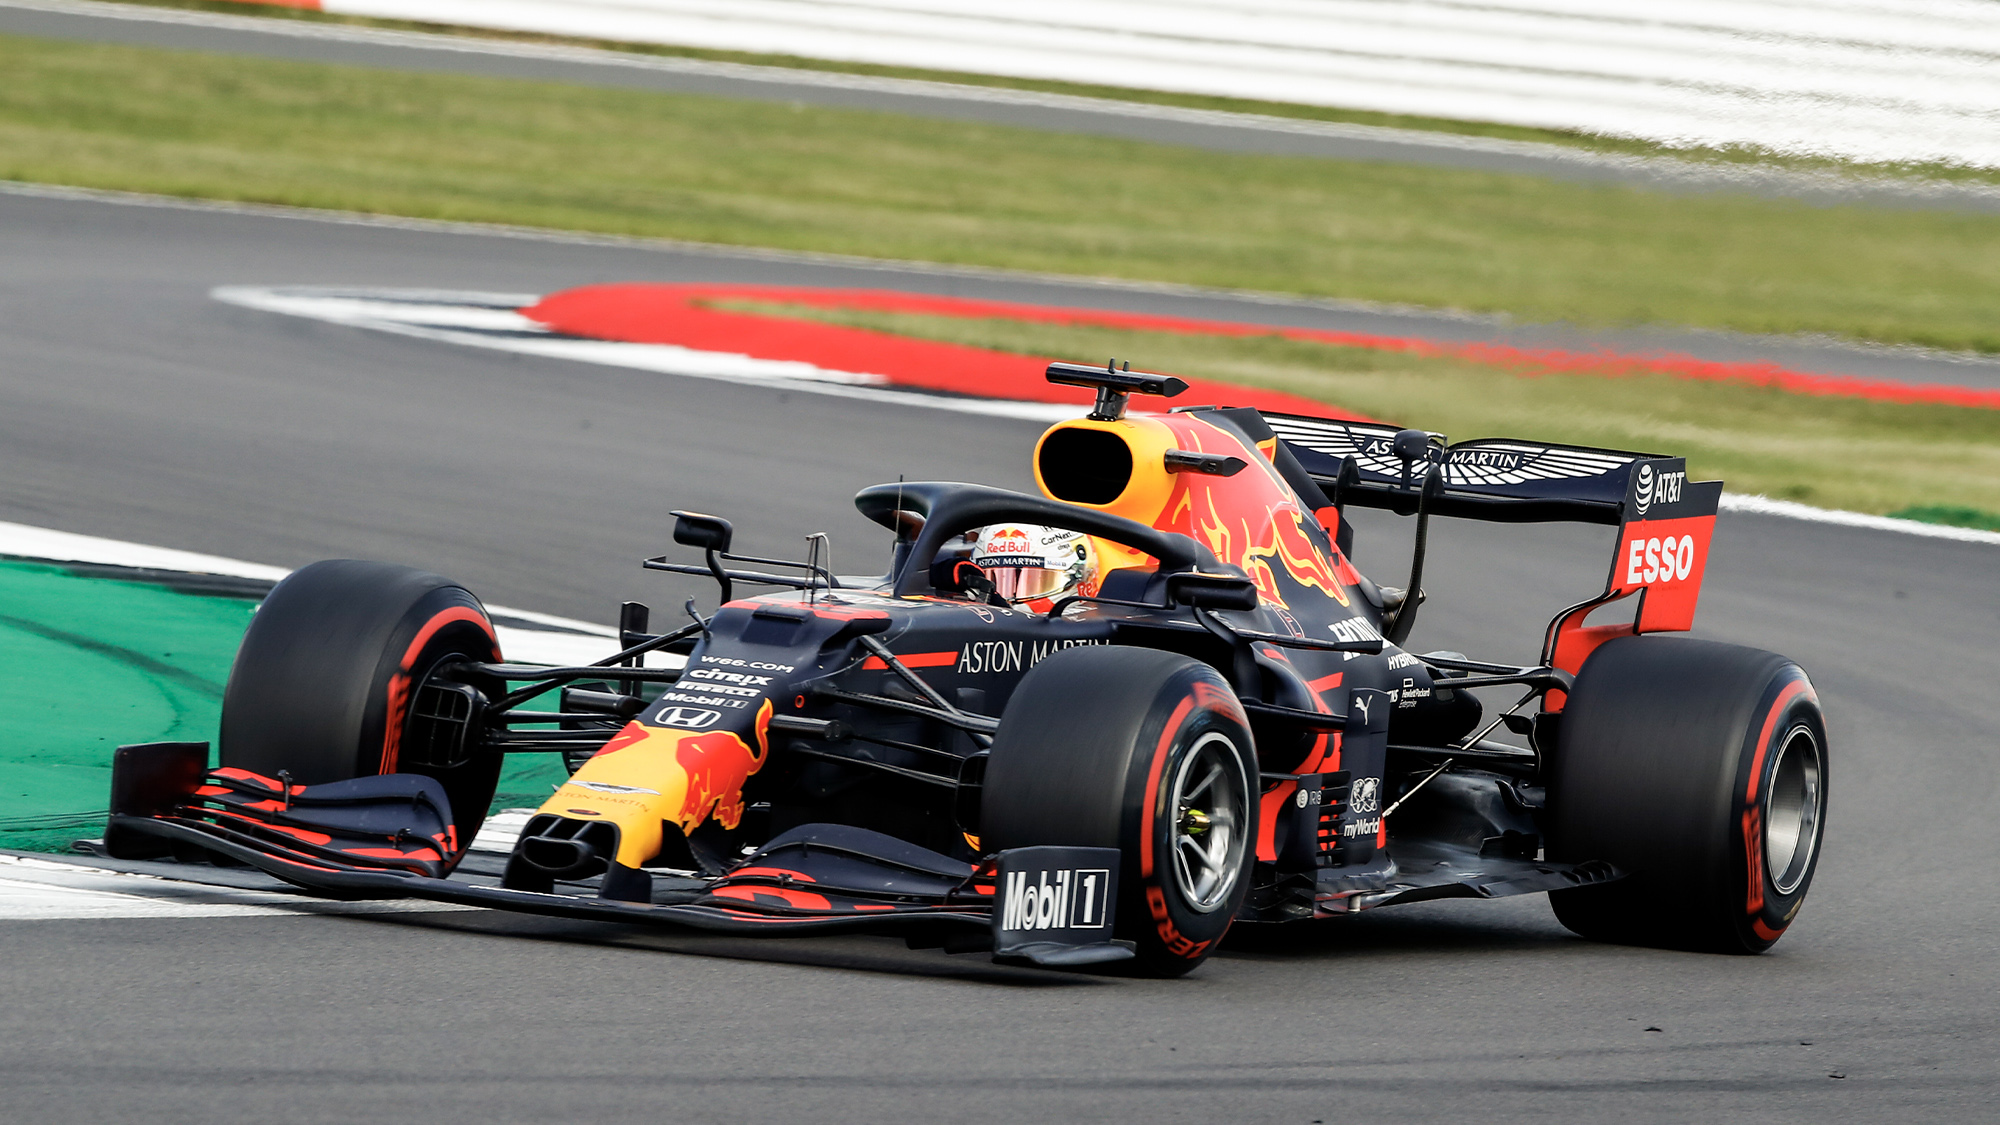 Max Verstappen's Red Bull on track at Silverstone during the 2020 F1 British Grand Prix